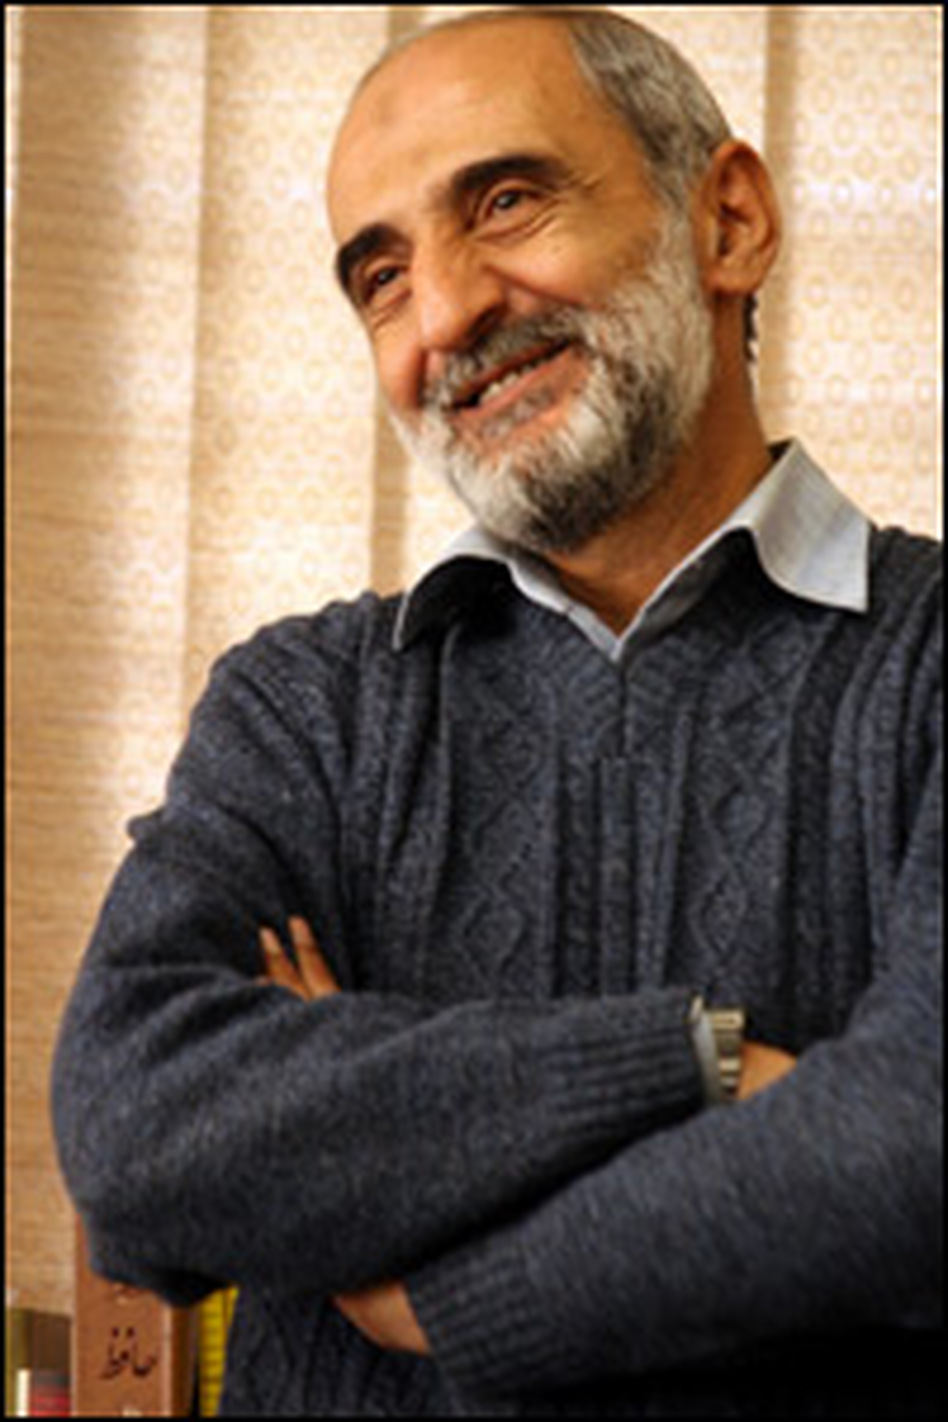 Hossein Shariatmadari is chief editor of <em>Kayhan,</em> a newspaper that supports Iran's regime. He was once jailed and tortured by the Shah of Iran's intelligence service for his pro-revolution writings and activism. Four years into a life sentence, the shah's regime fell and all political prisoners were freed.